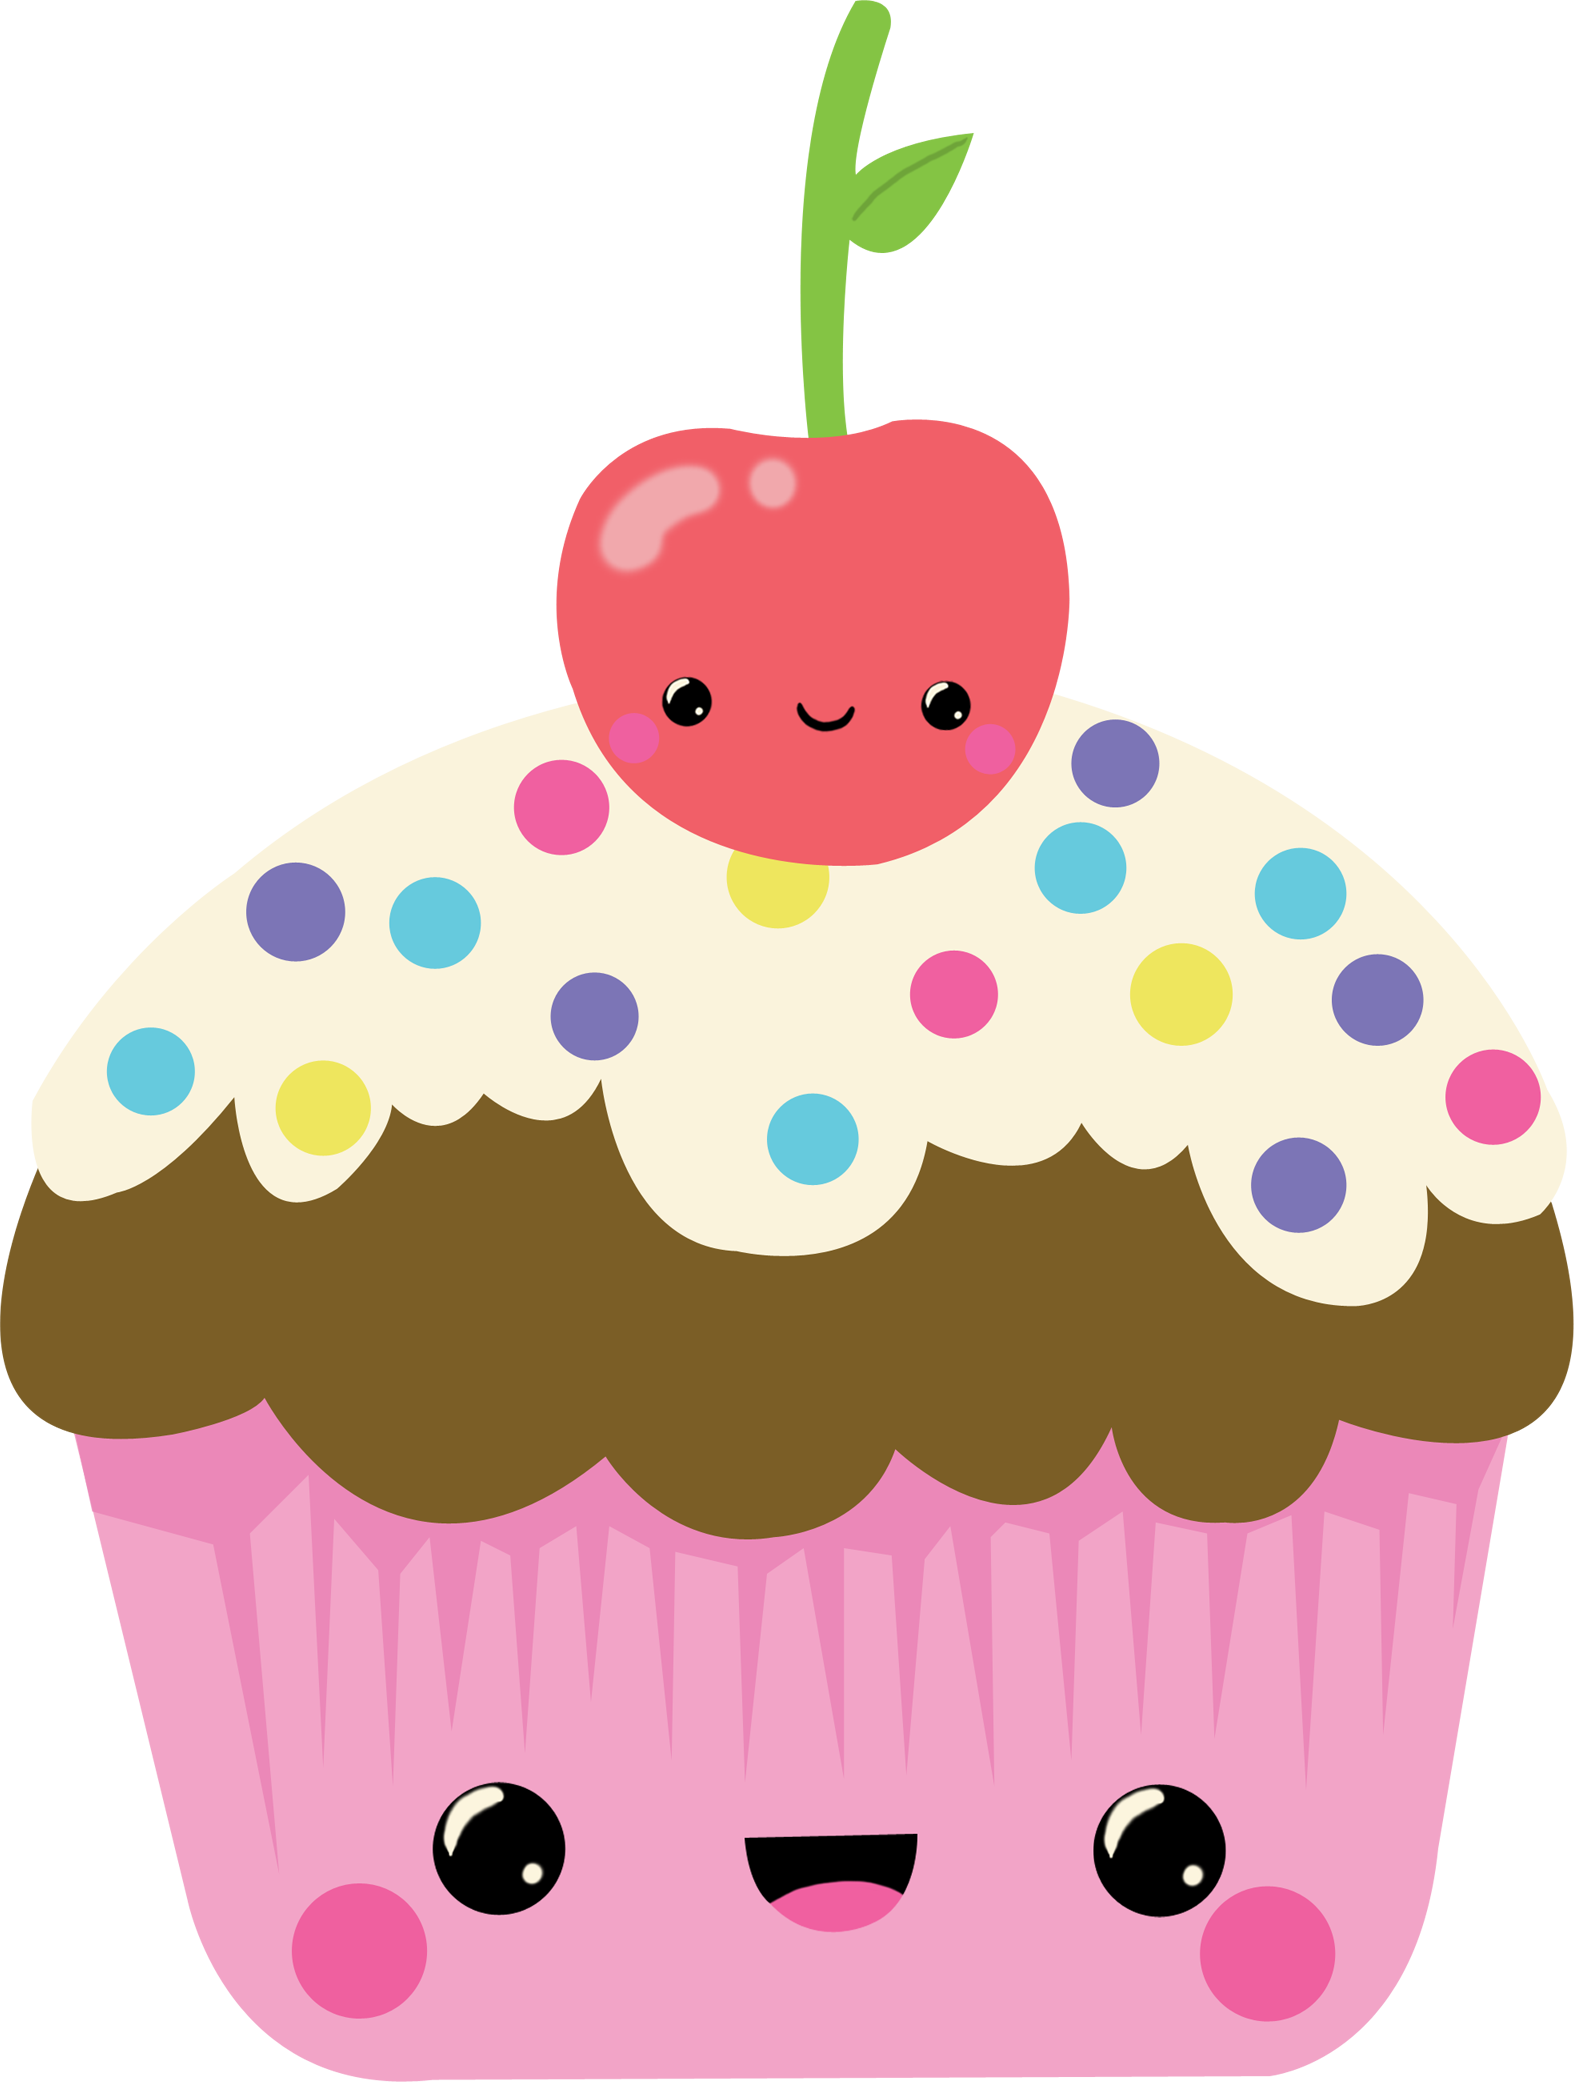 Image Result For Kawaii Cupcake Arte Gráfica